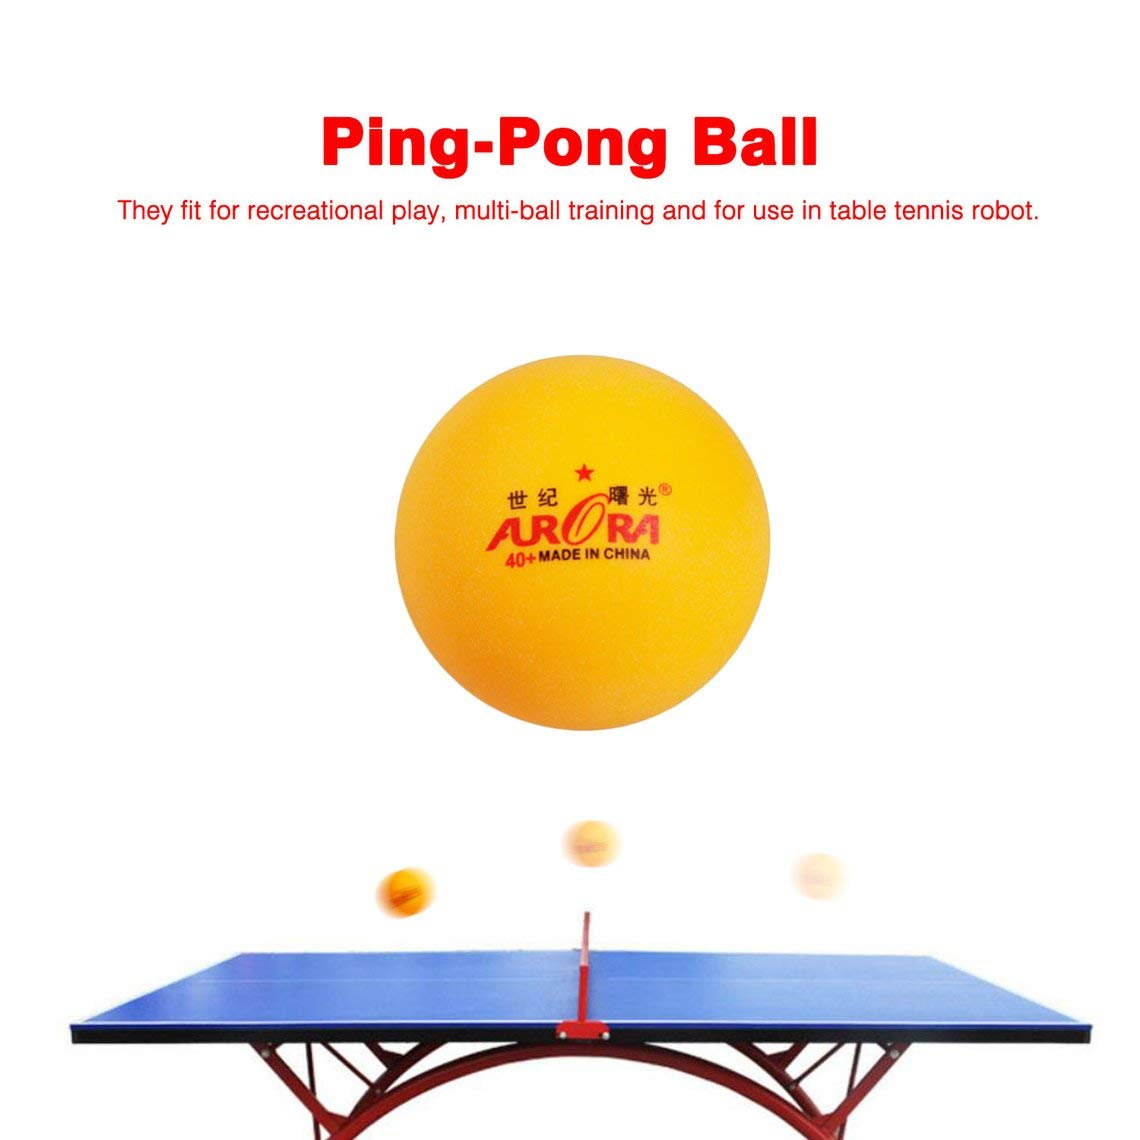 10 Pcs Professional Practice Ping-Pong Ball Table Tennis Ball In Bulk Competition Match Training Equipment Yellow